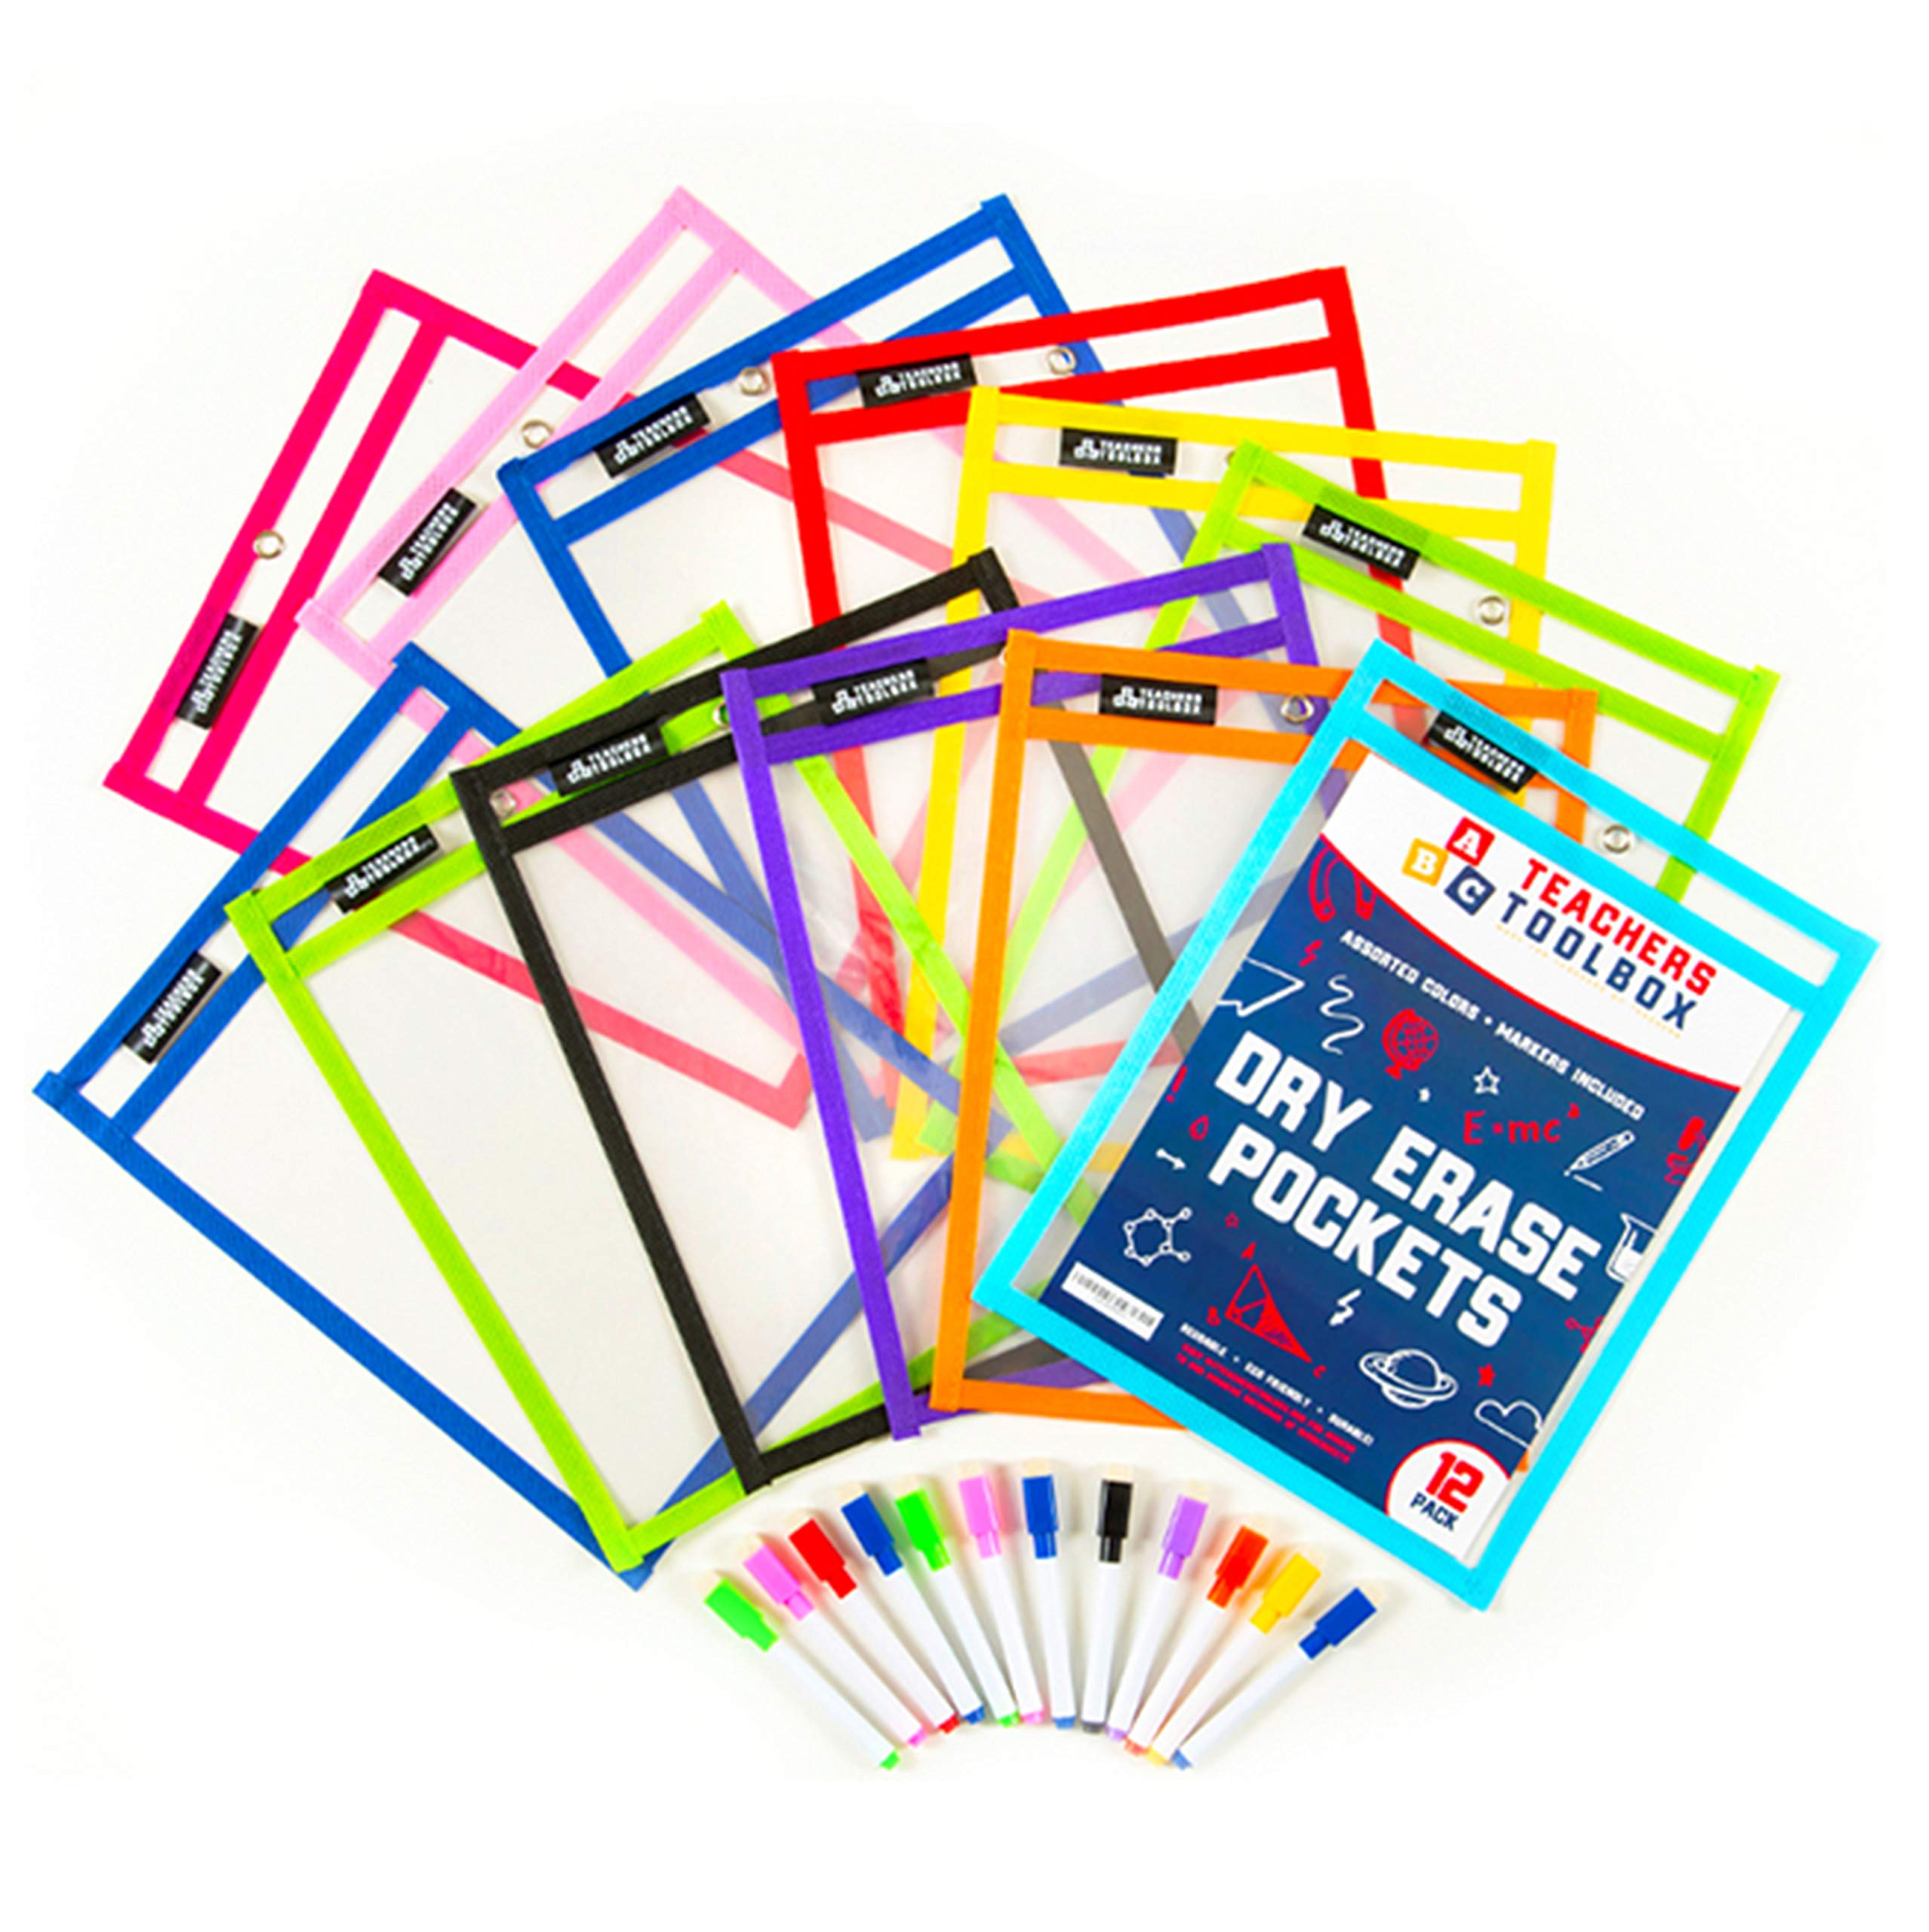 """Dry Erase Pockets 12pc [10"""" x 13""""] +FREE PENS +BONUS 900 Downloadable Worksheets! Write and Wipe Reusable Plastic Sheet Protectors For Classroom Organization & Teaching Supplies by Teachers Toolbox"""